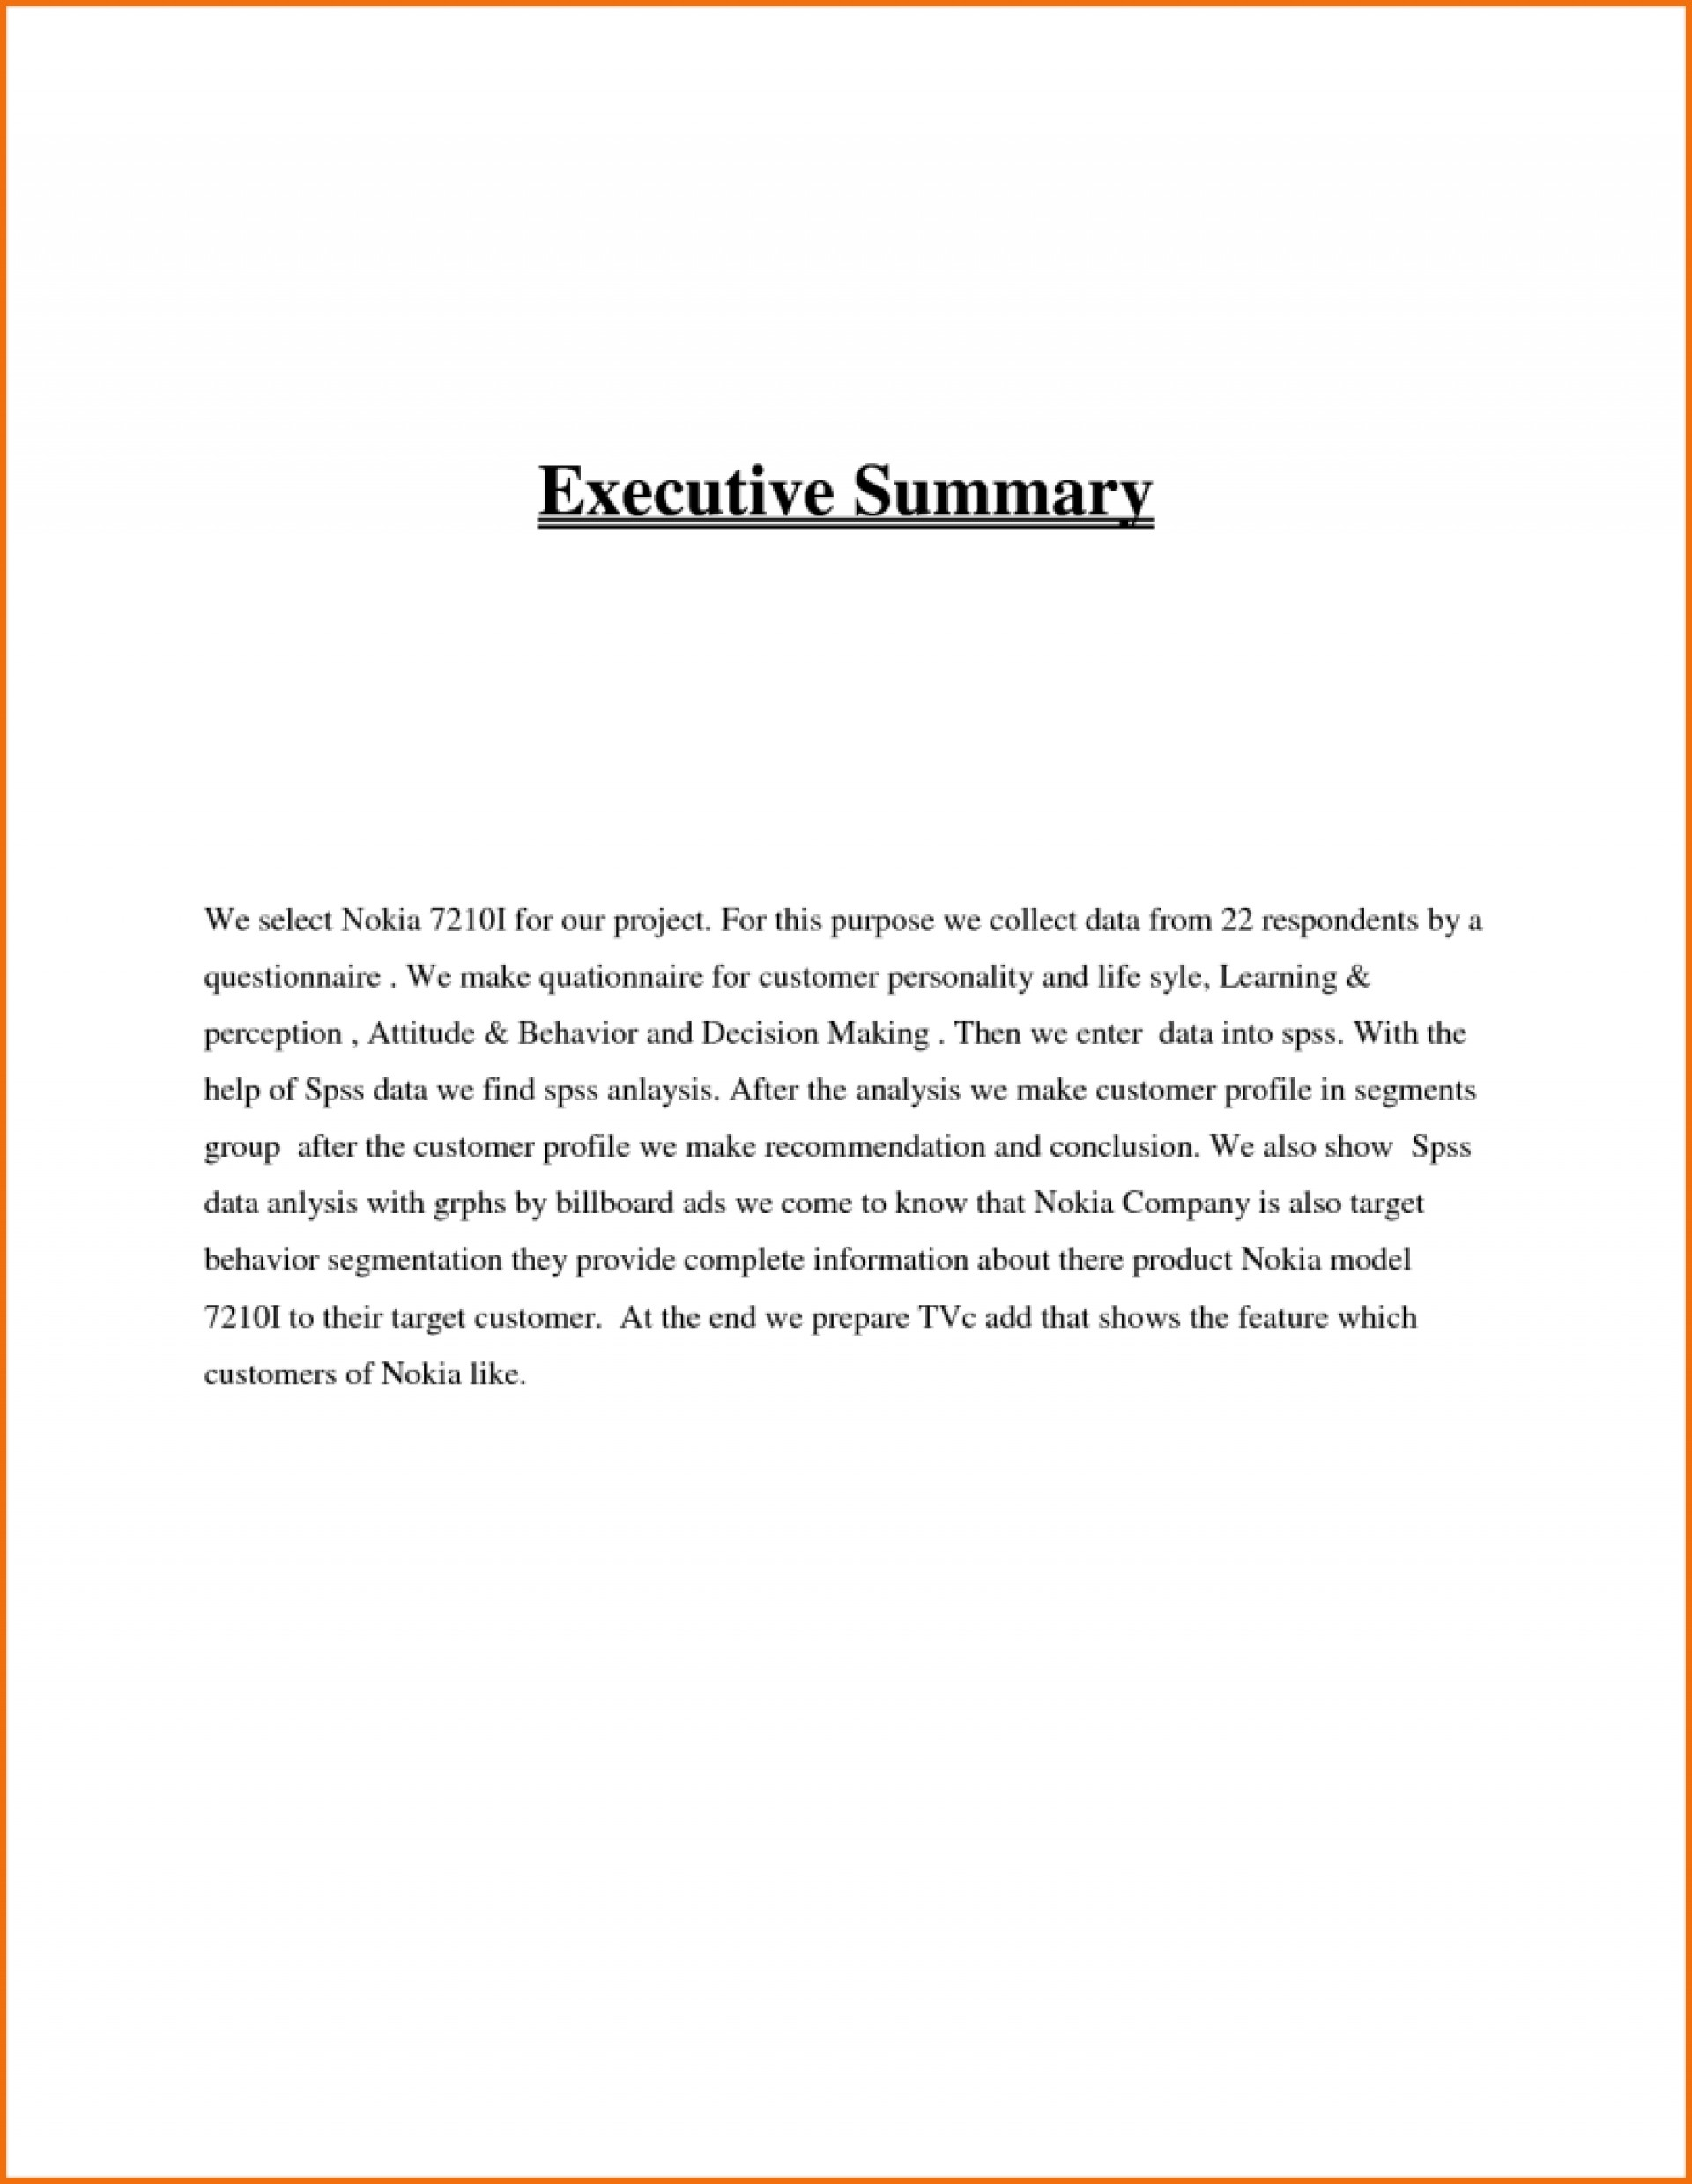 020 Research Paper Executive Summary Example Format Unforgettable 1920